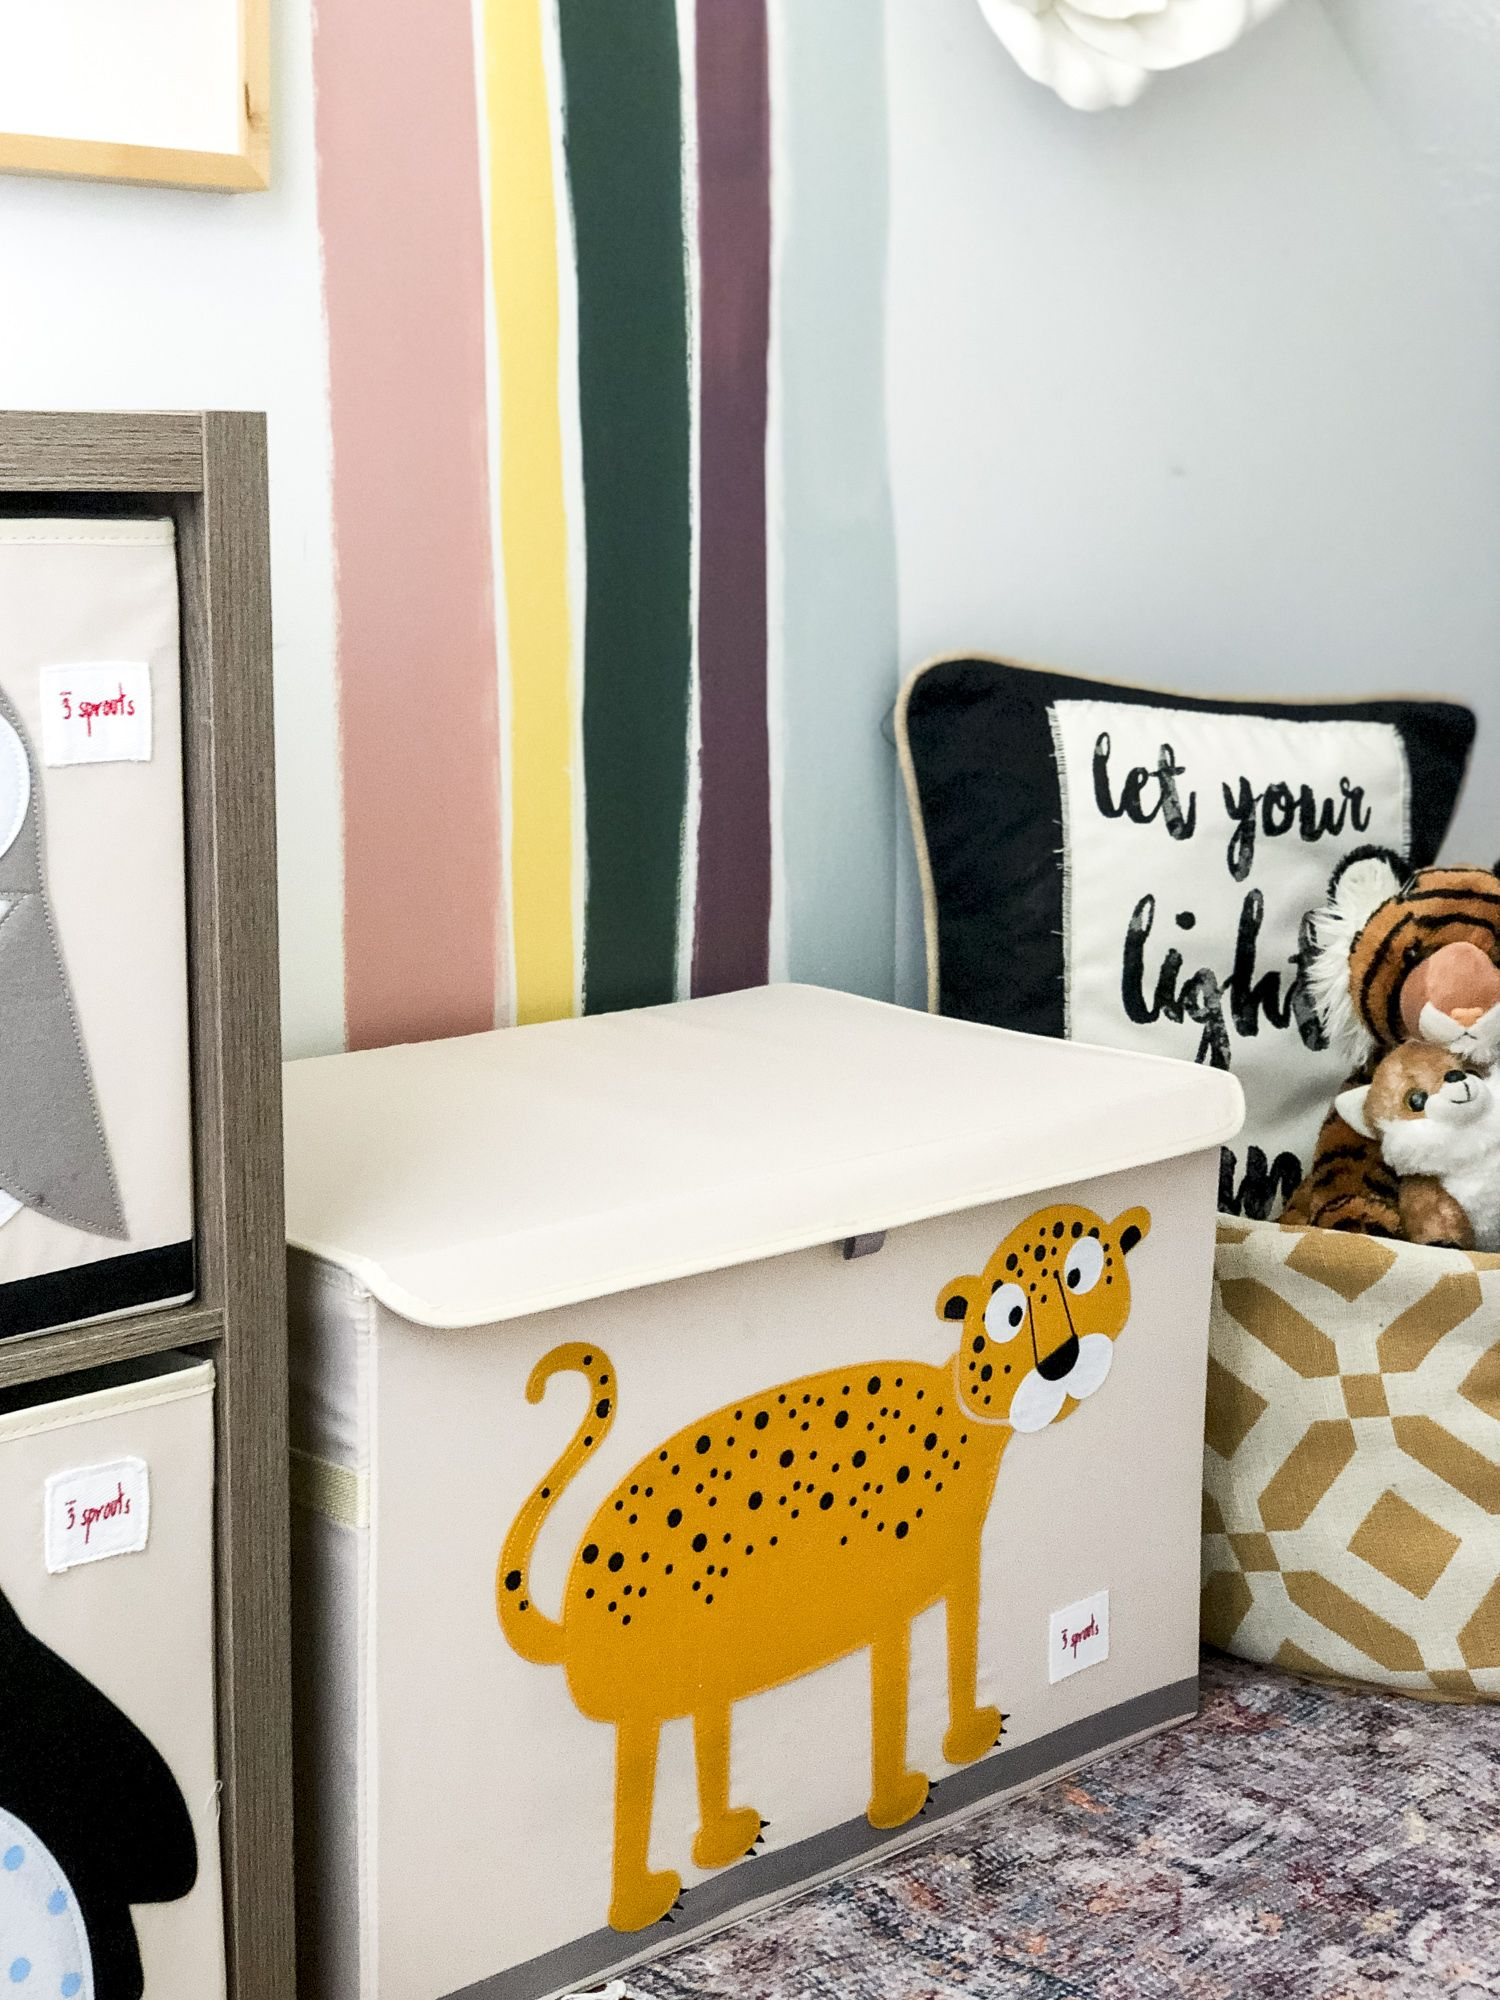 Playroom Ideas For Small Spaces | Playroom Storage, Small